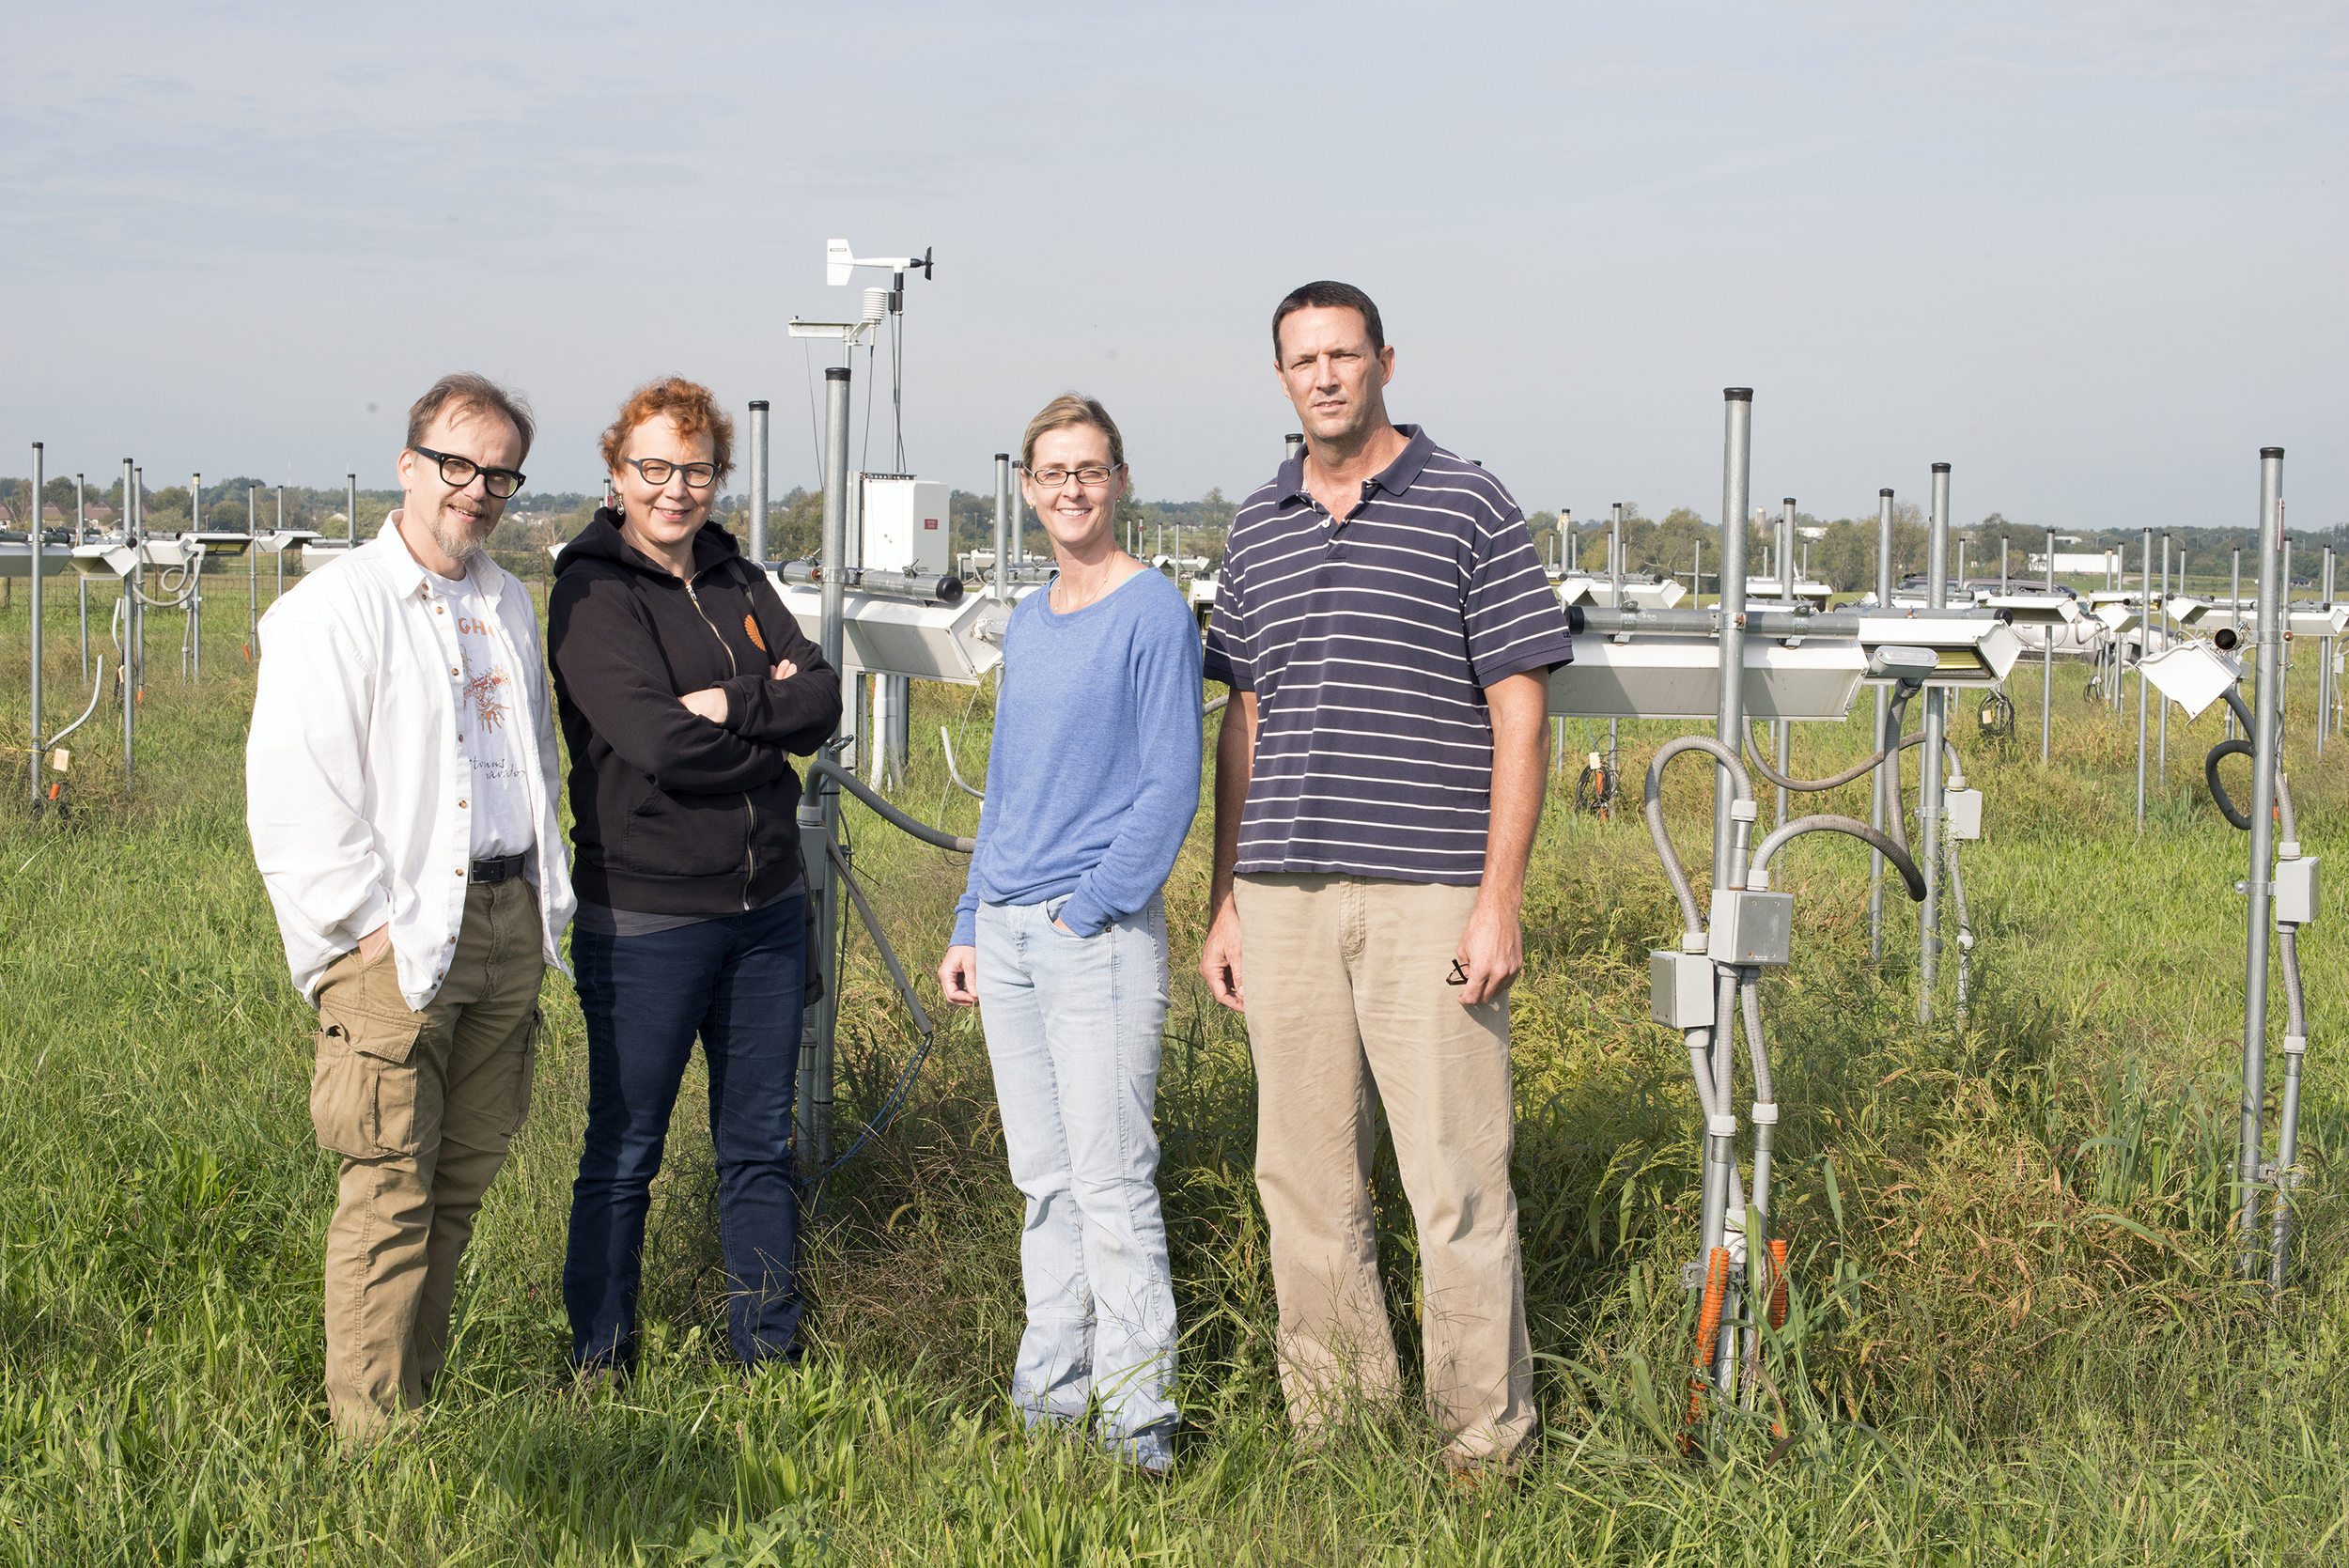 Kari and Marjo(Left) with Rebecca and Jim at the UK climate change project in Lexington.